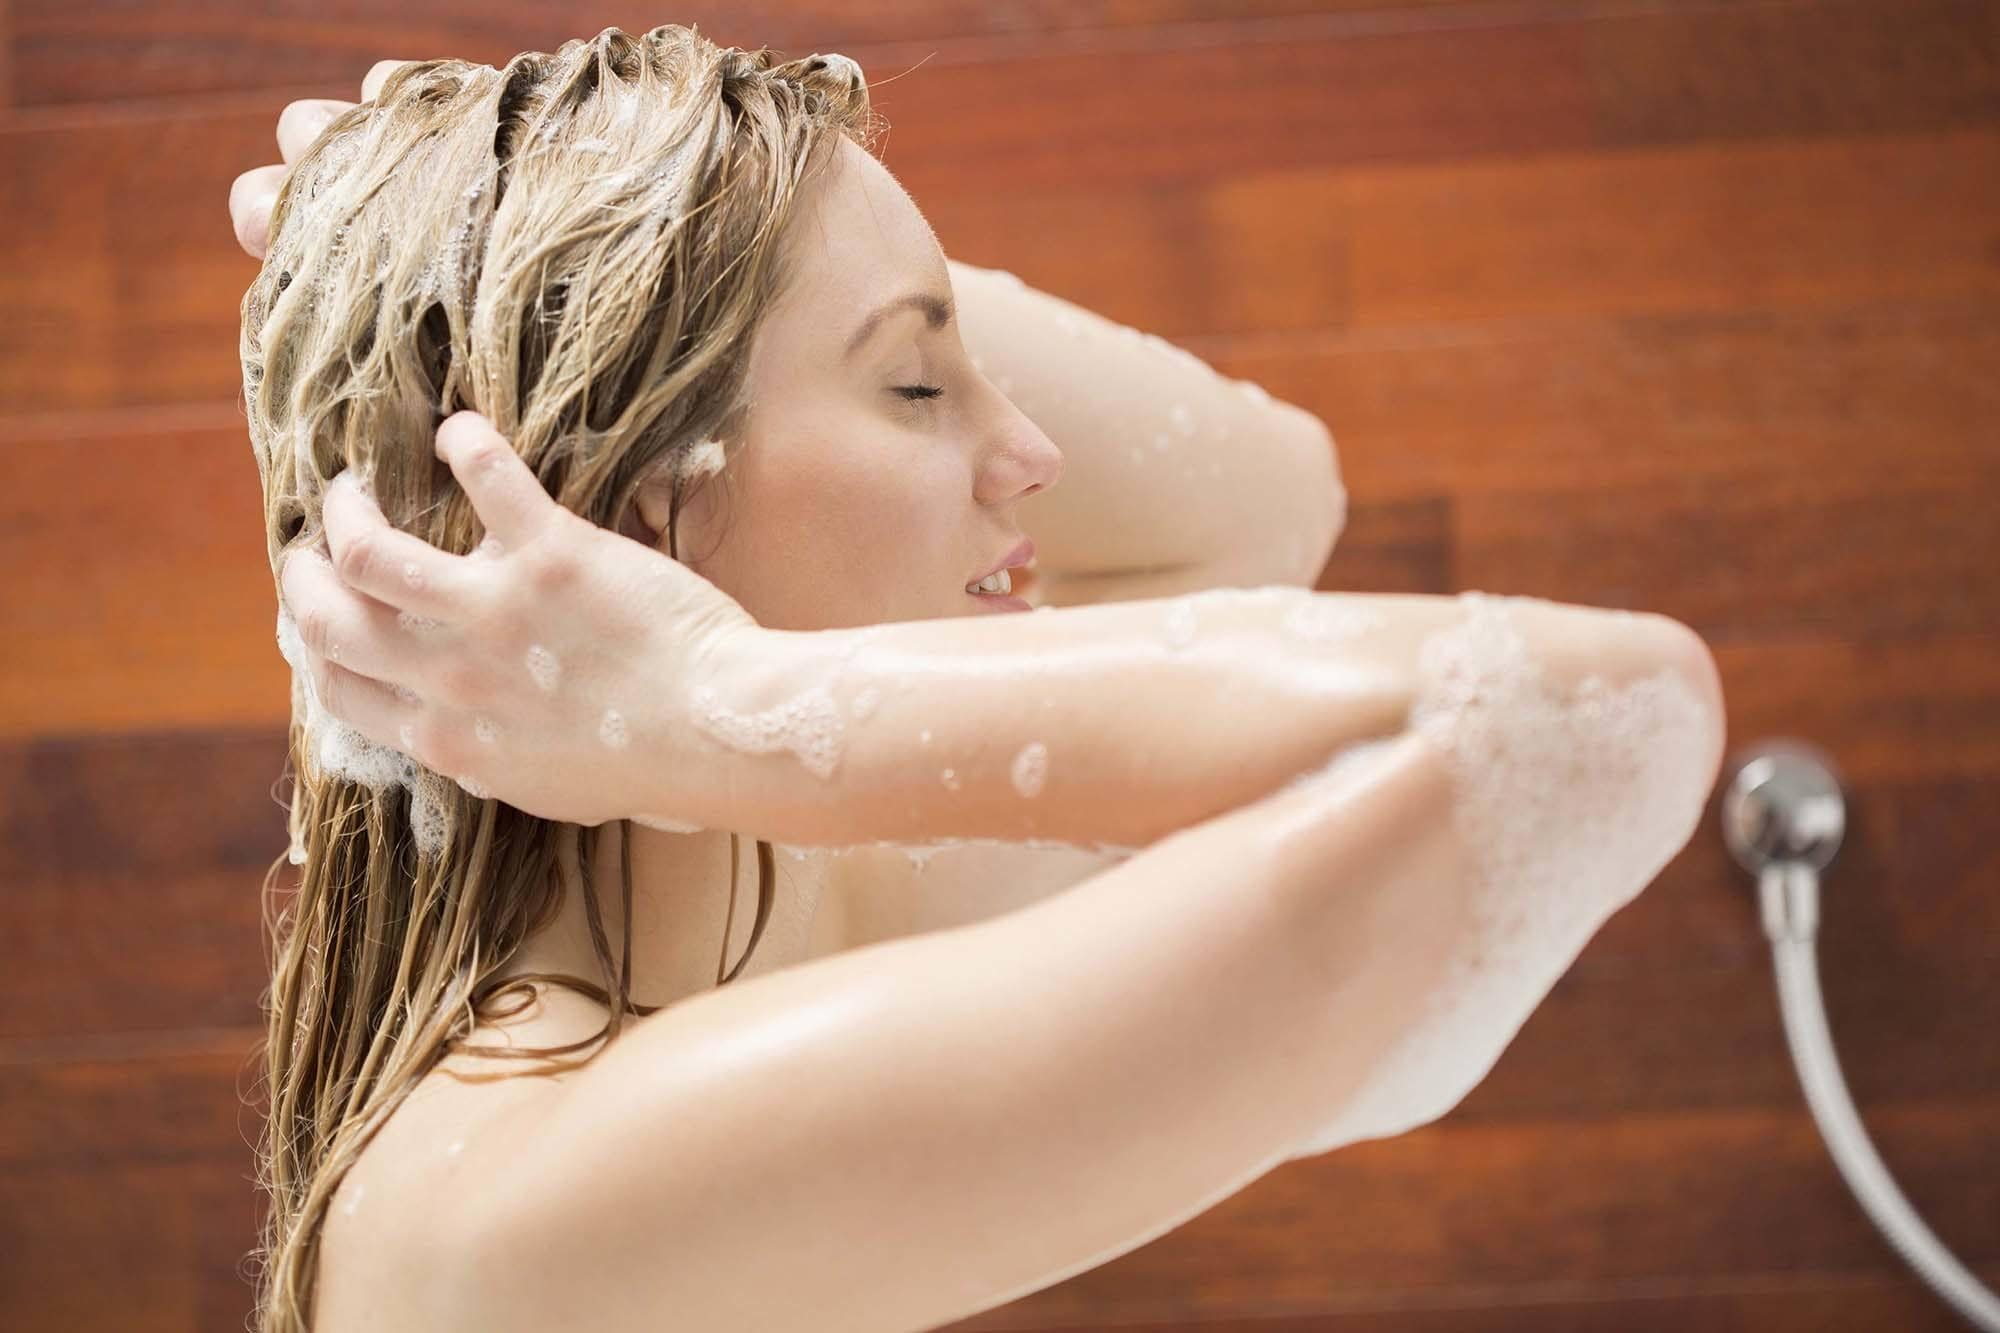 blonde woman in the shower washing her hair